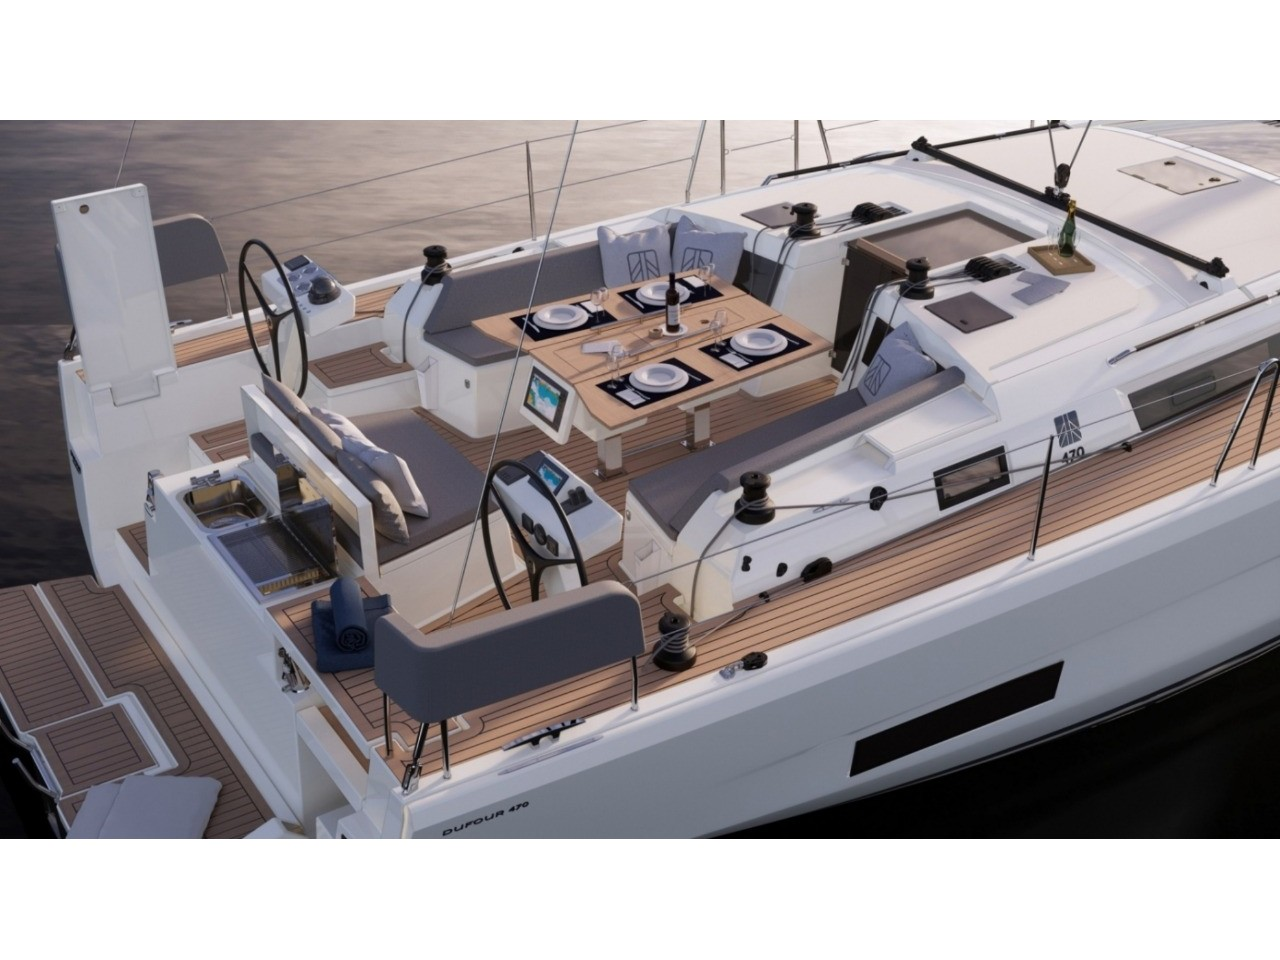 Dufour 470 (Ad Astra - Customized exclusive s/y) Main image - 0